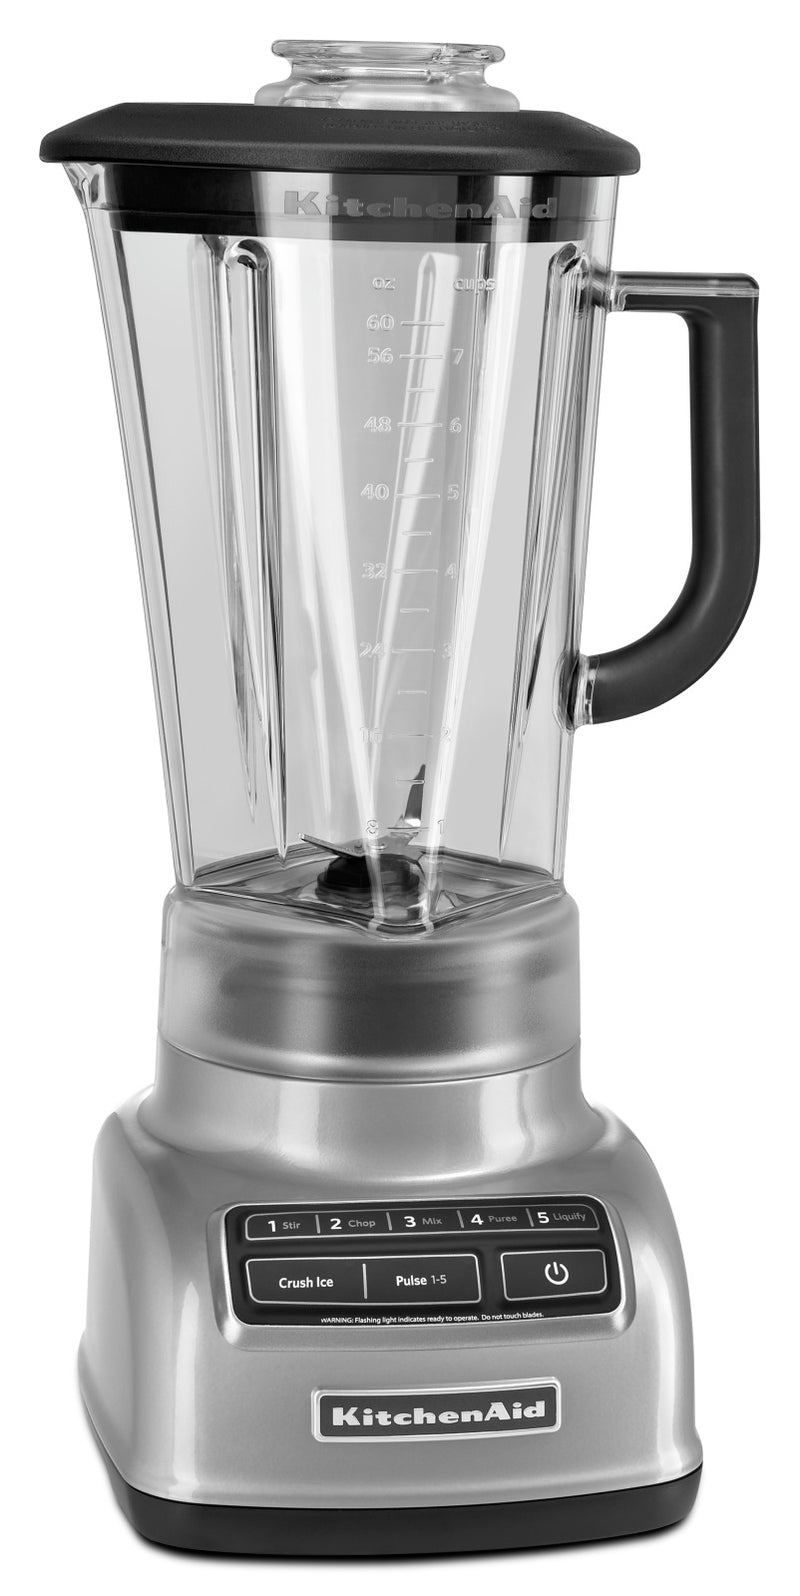 KitchenAid Five-Speed Diamond Blender - KSB1575MC|Mélangeur à base losange à cinq vitesses KitchenAid - KSB1575MC|KSB1575M